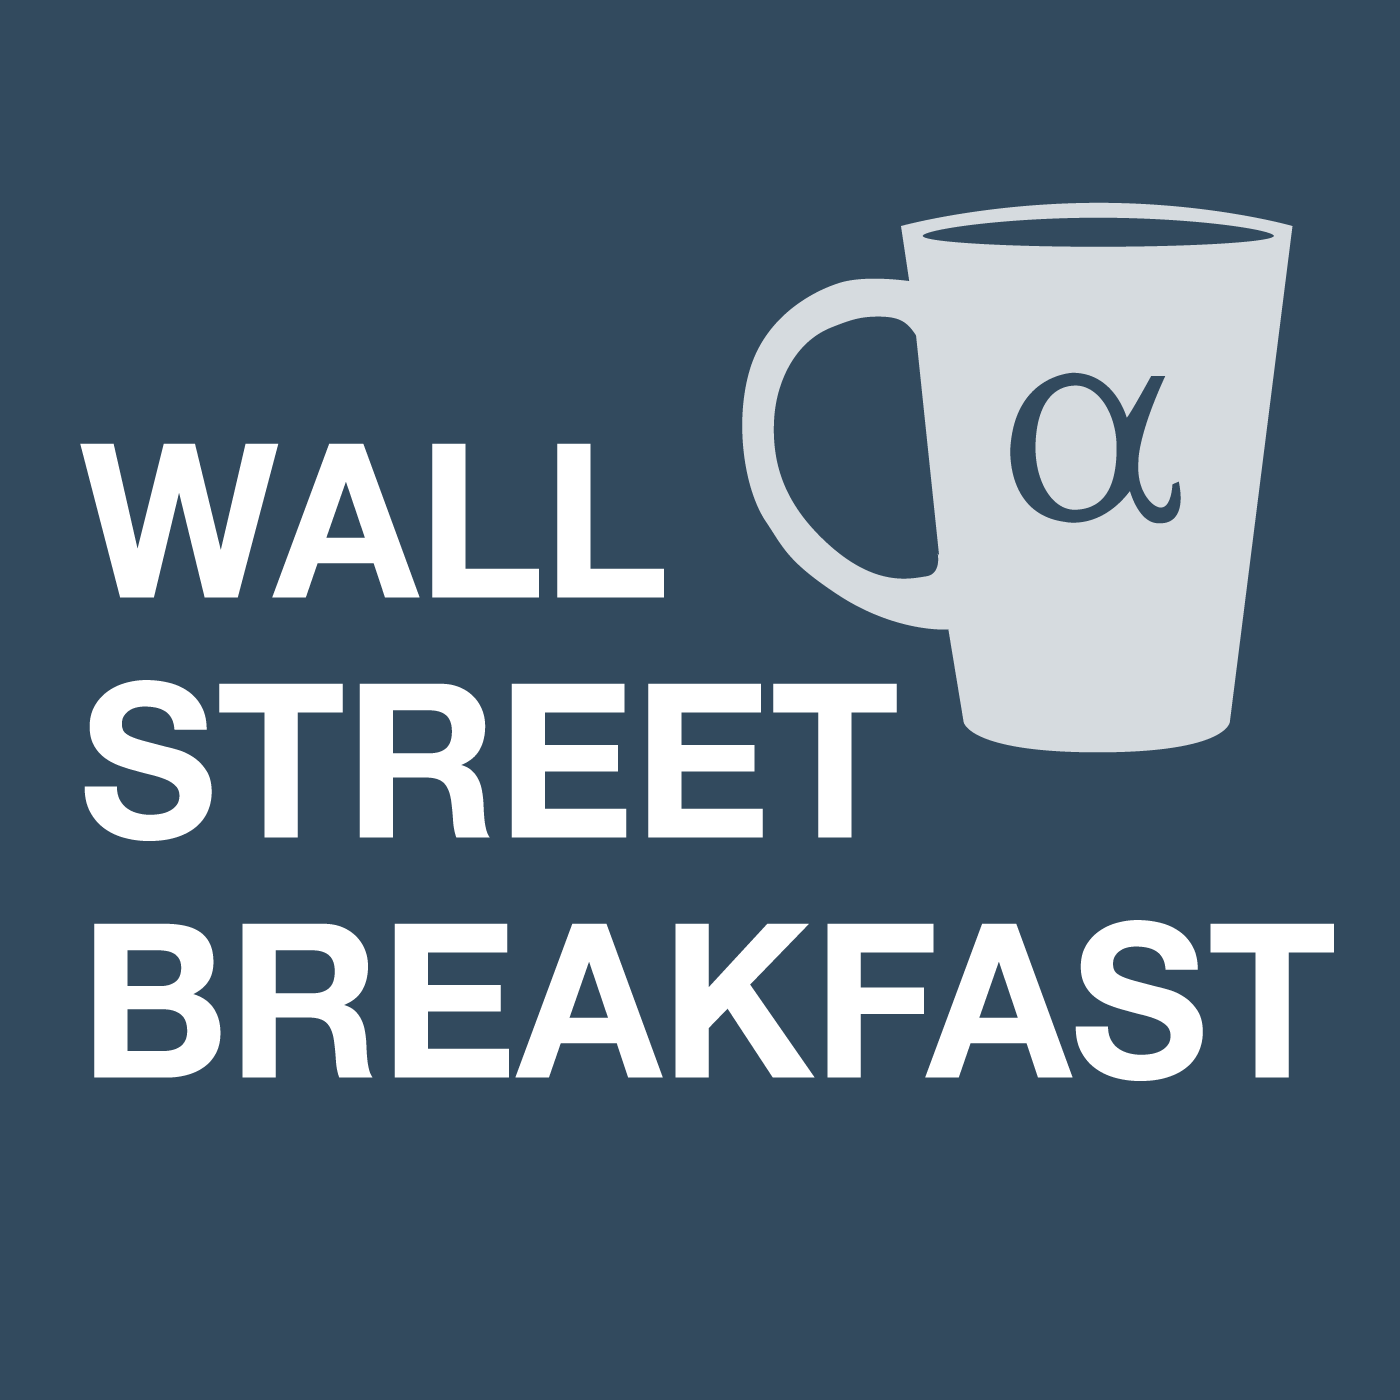 Wall Street Breakfast July 8: Market Rally Takes A Step Back